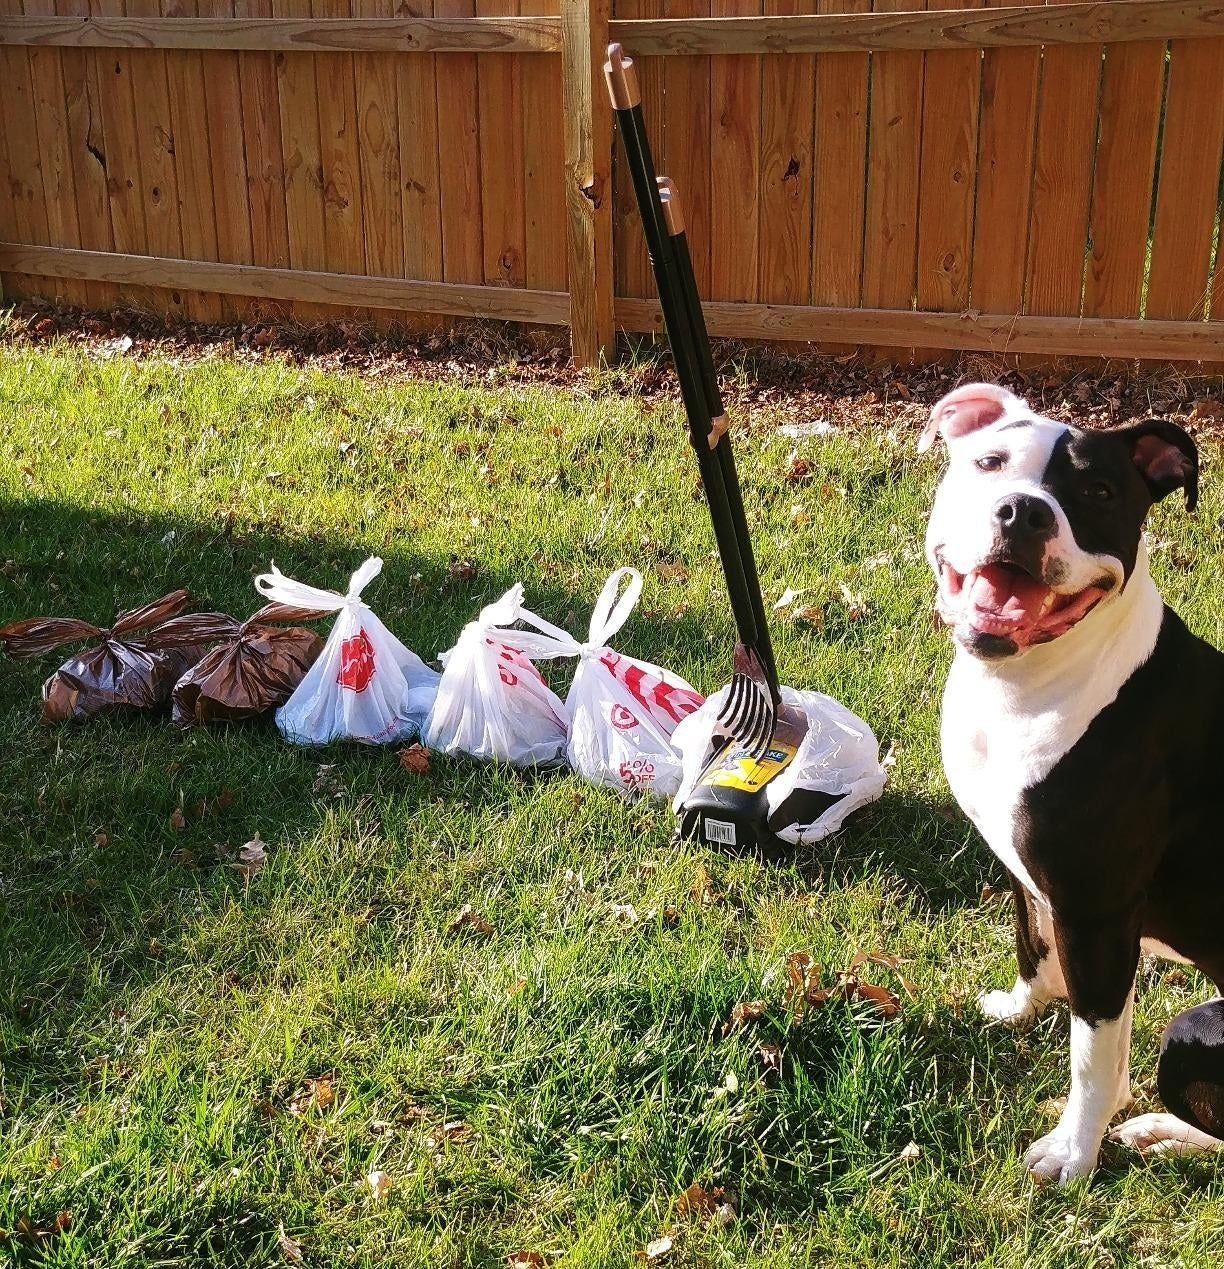 A black and white dog on a lawn next to the scooper with five tied-up plastic grocery bags full of the dog's poop.